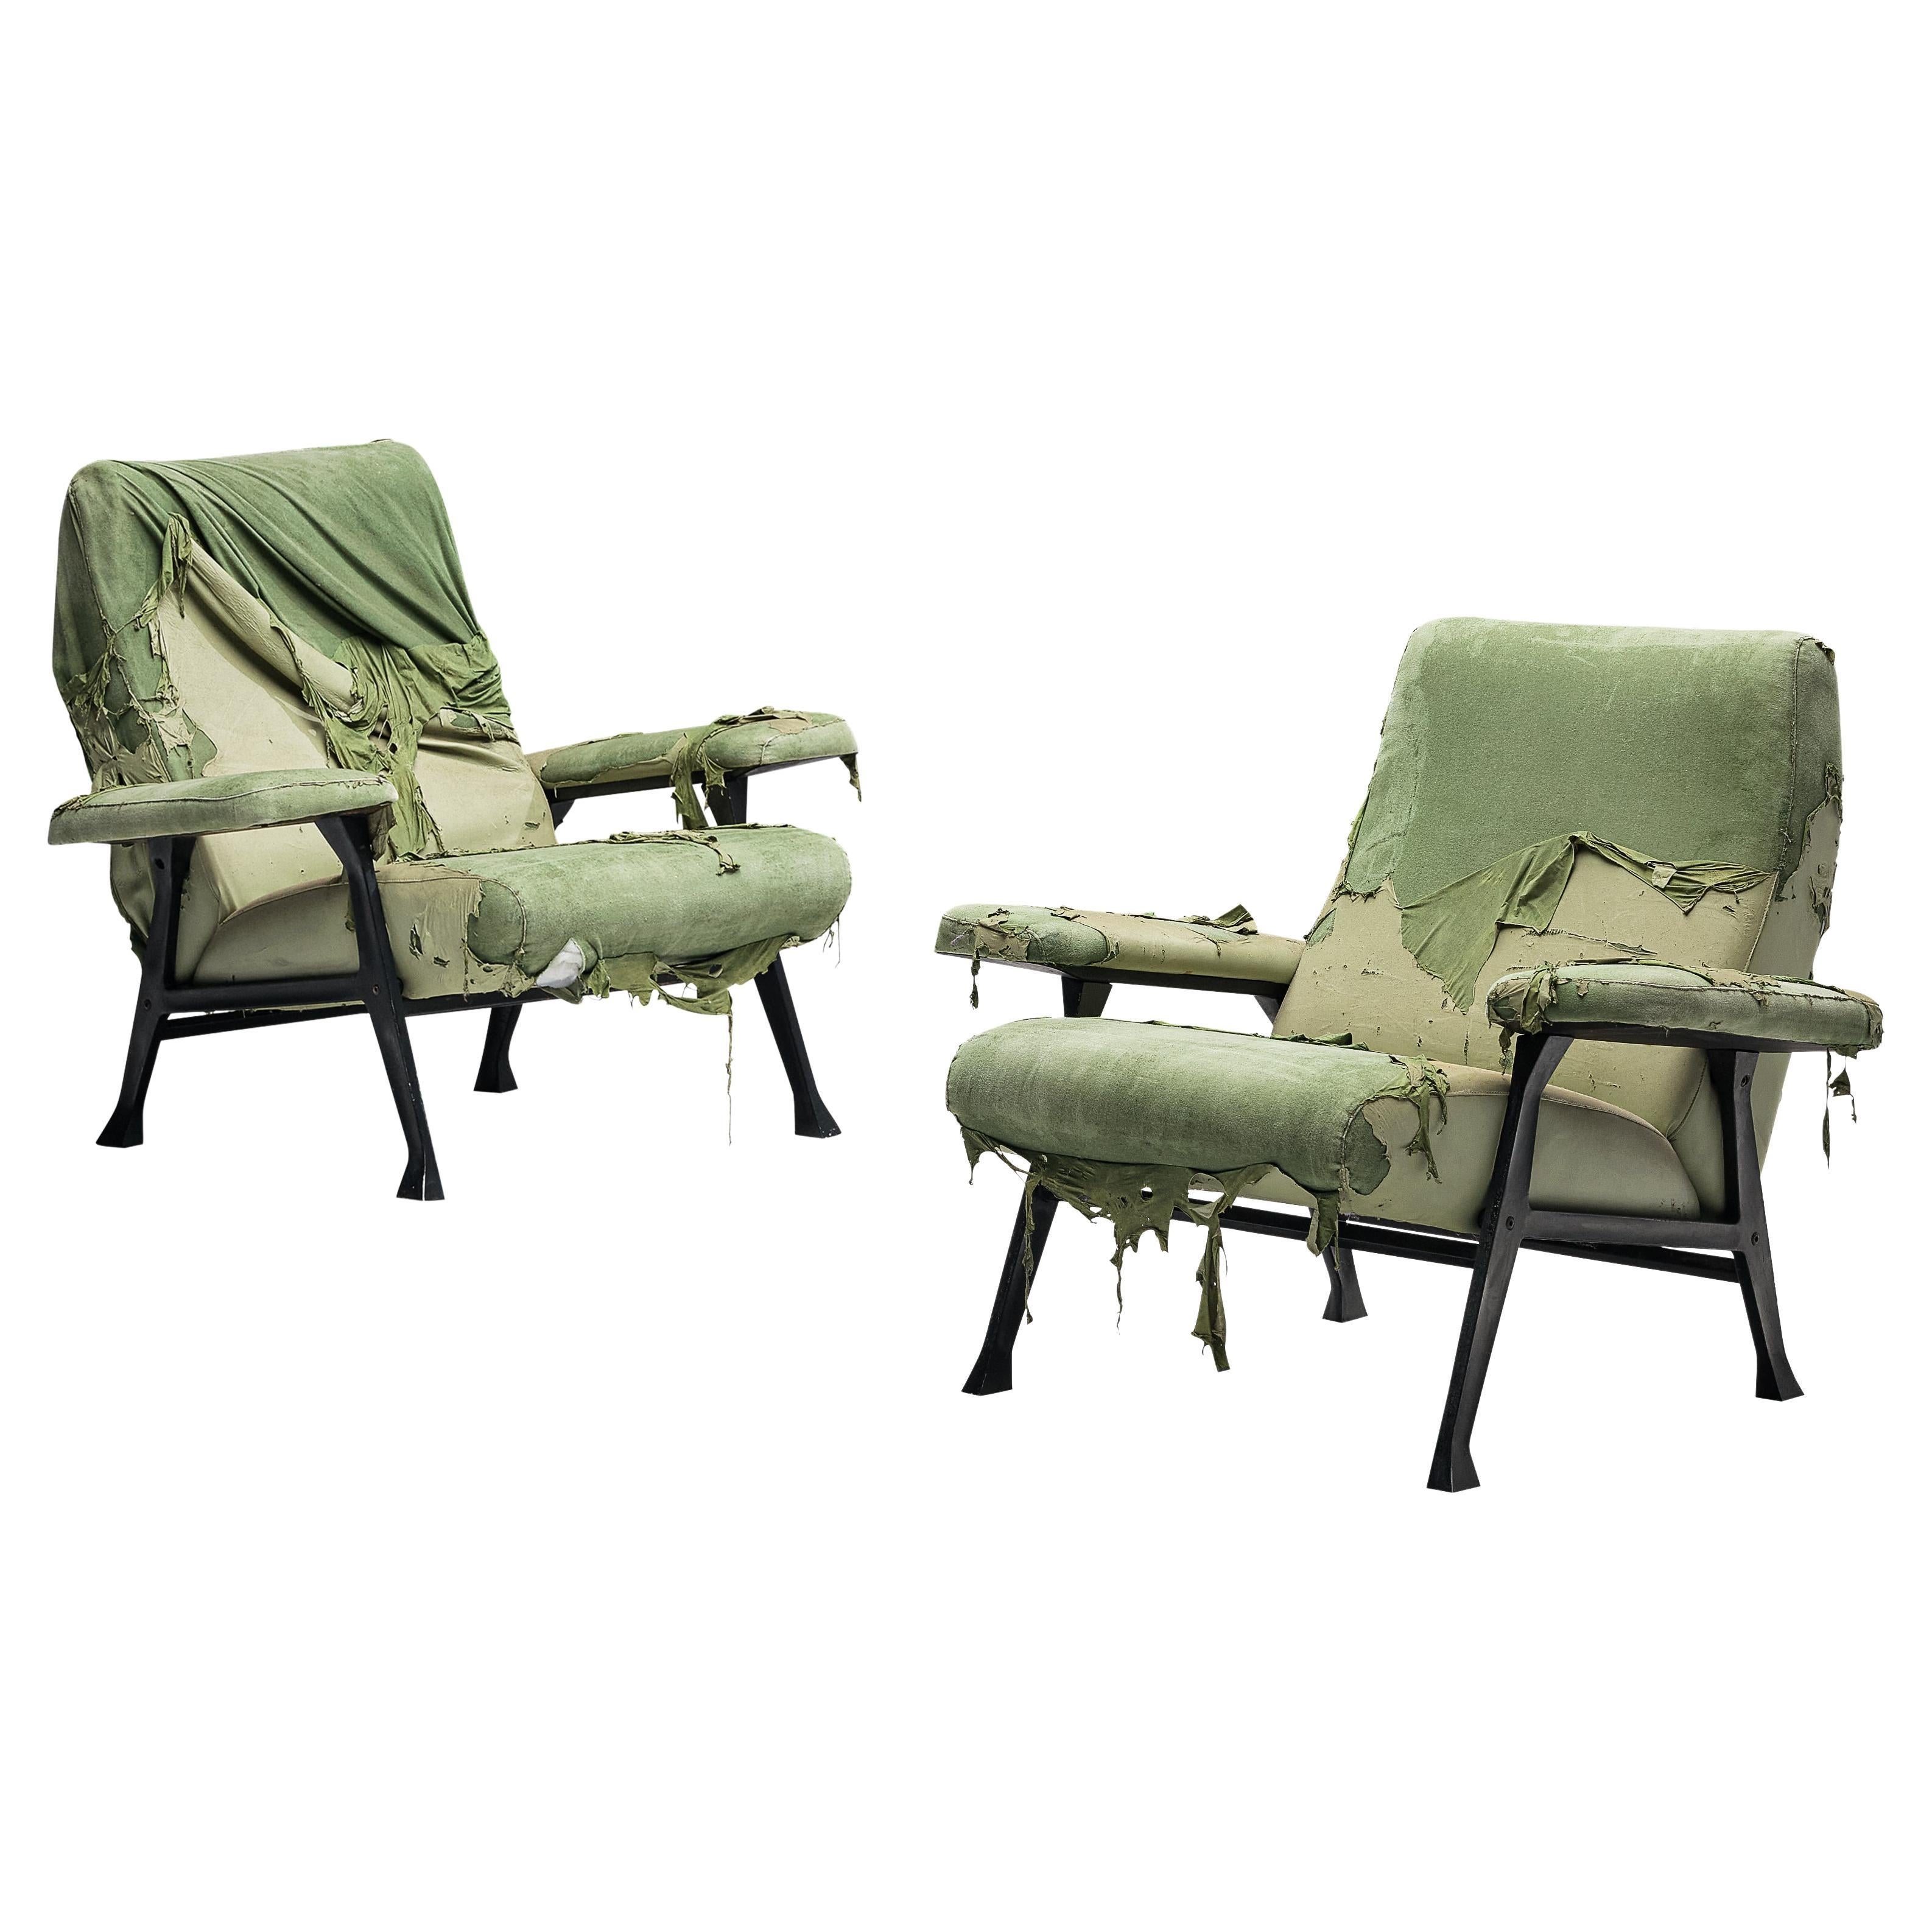 Roberto Menghi for Arflex Pair of 'Hall' Lounge Chairs in Light Green Fabric